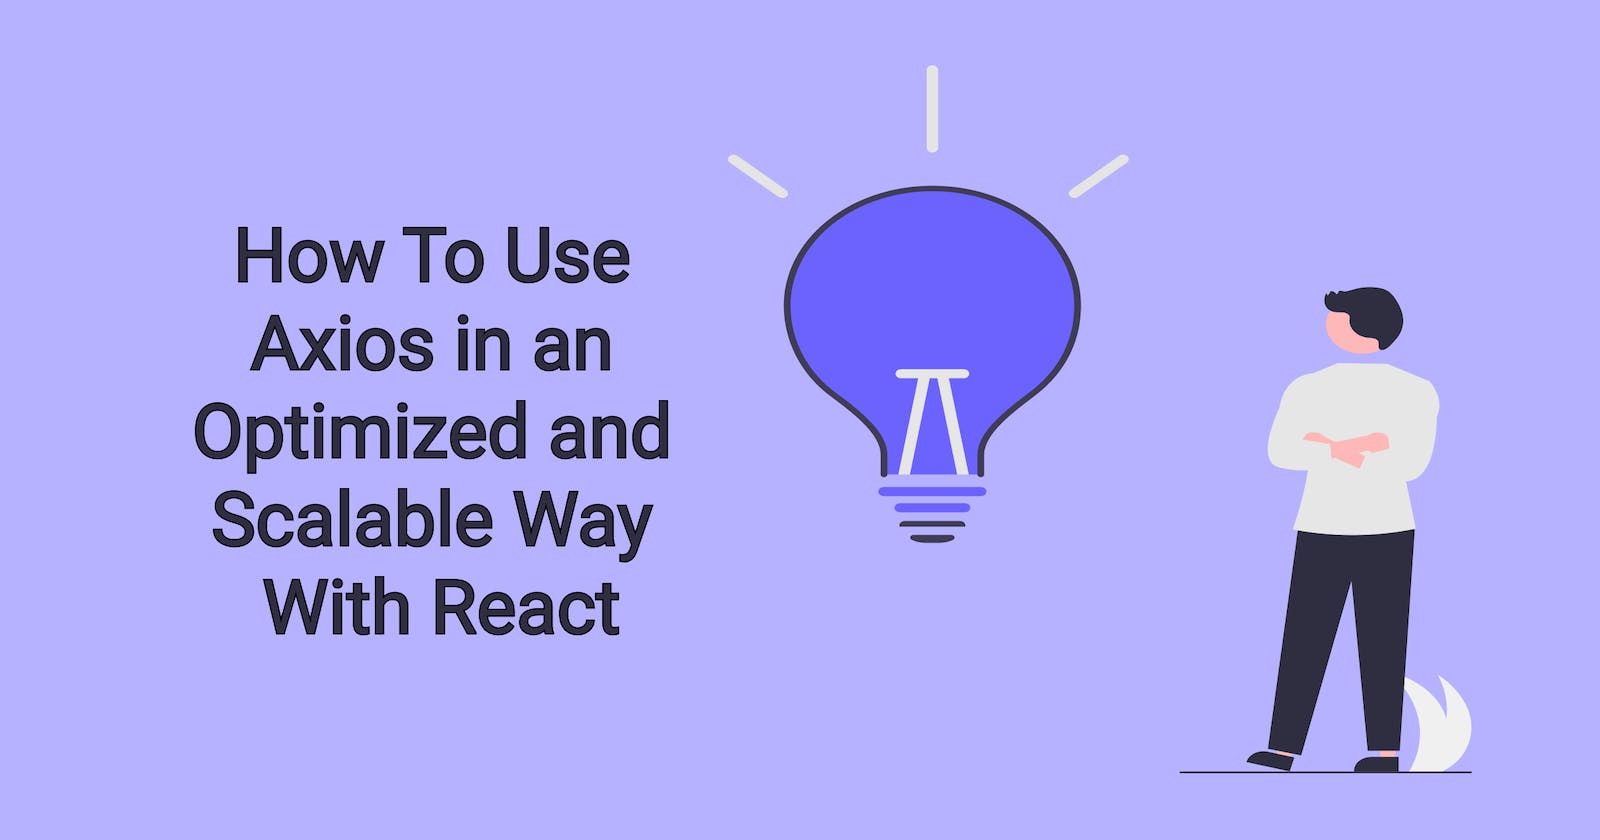 How To Use Axios in an Optimized and Scalable Way With React